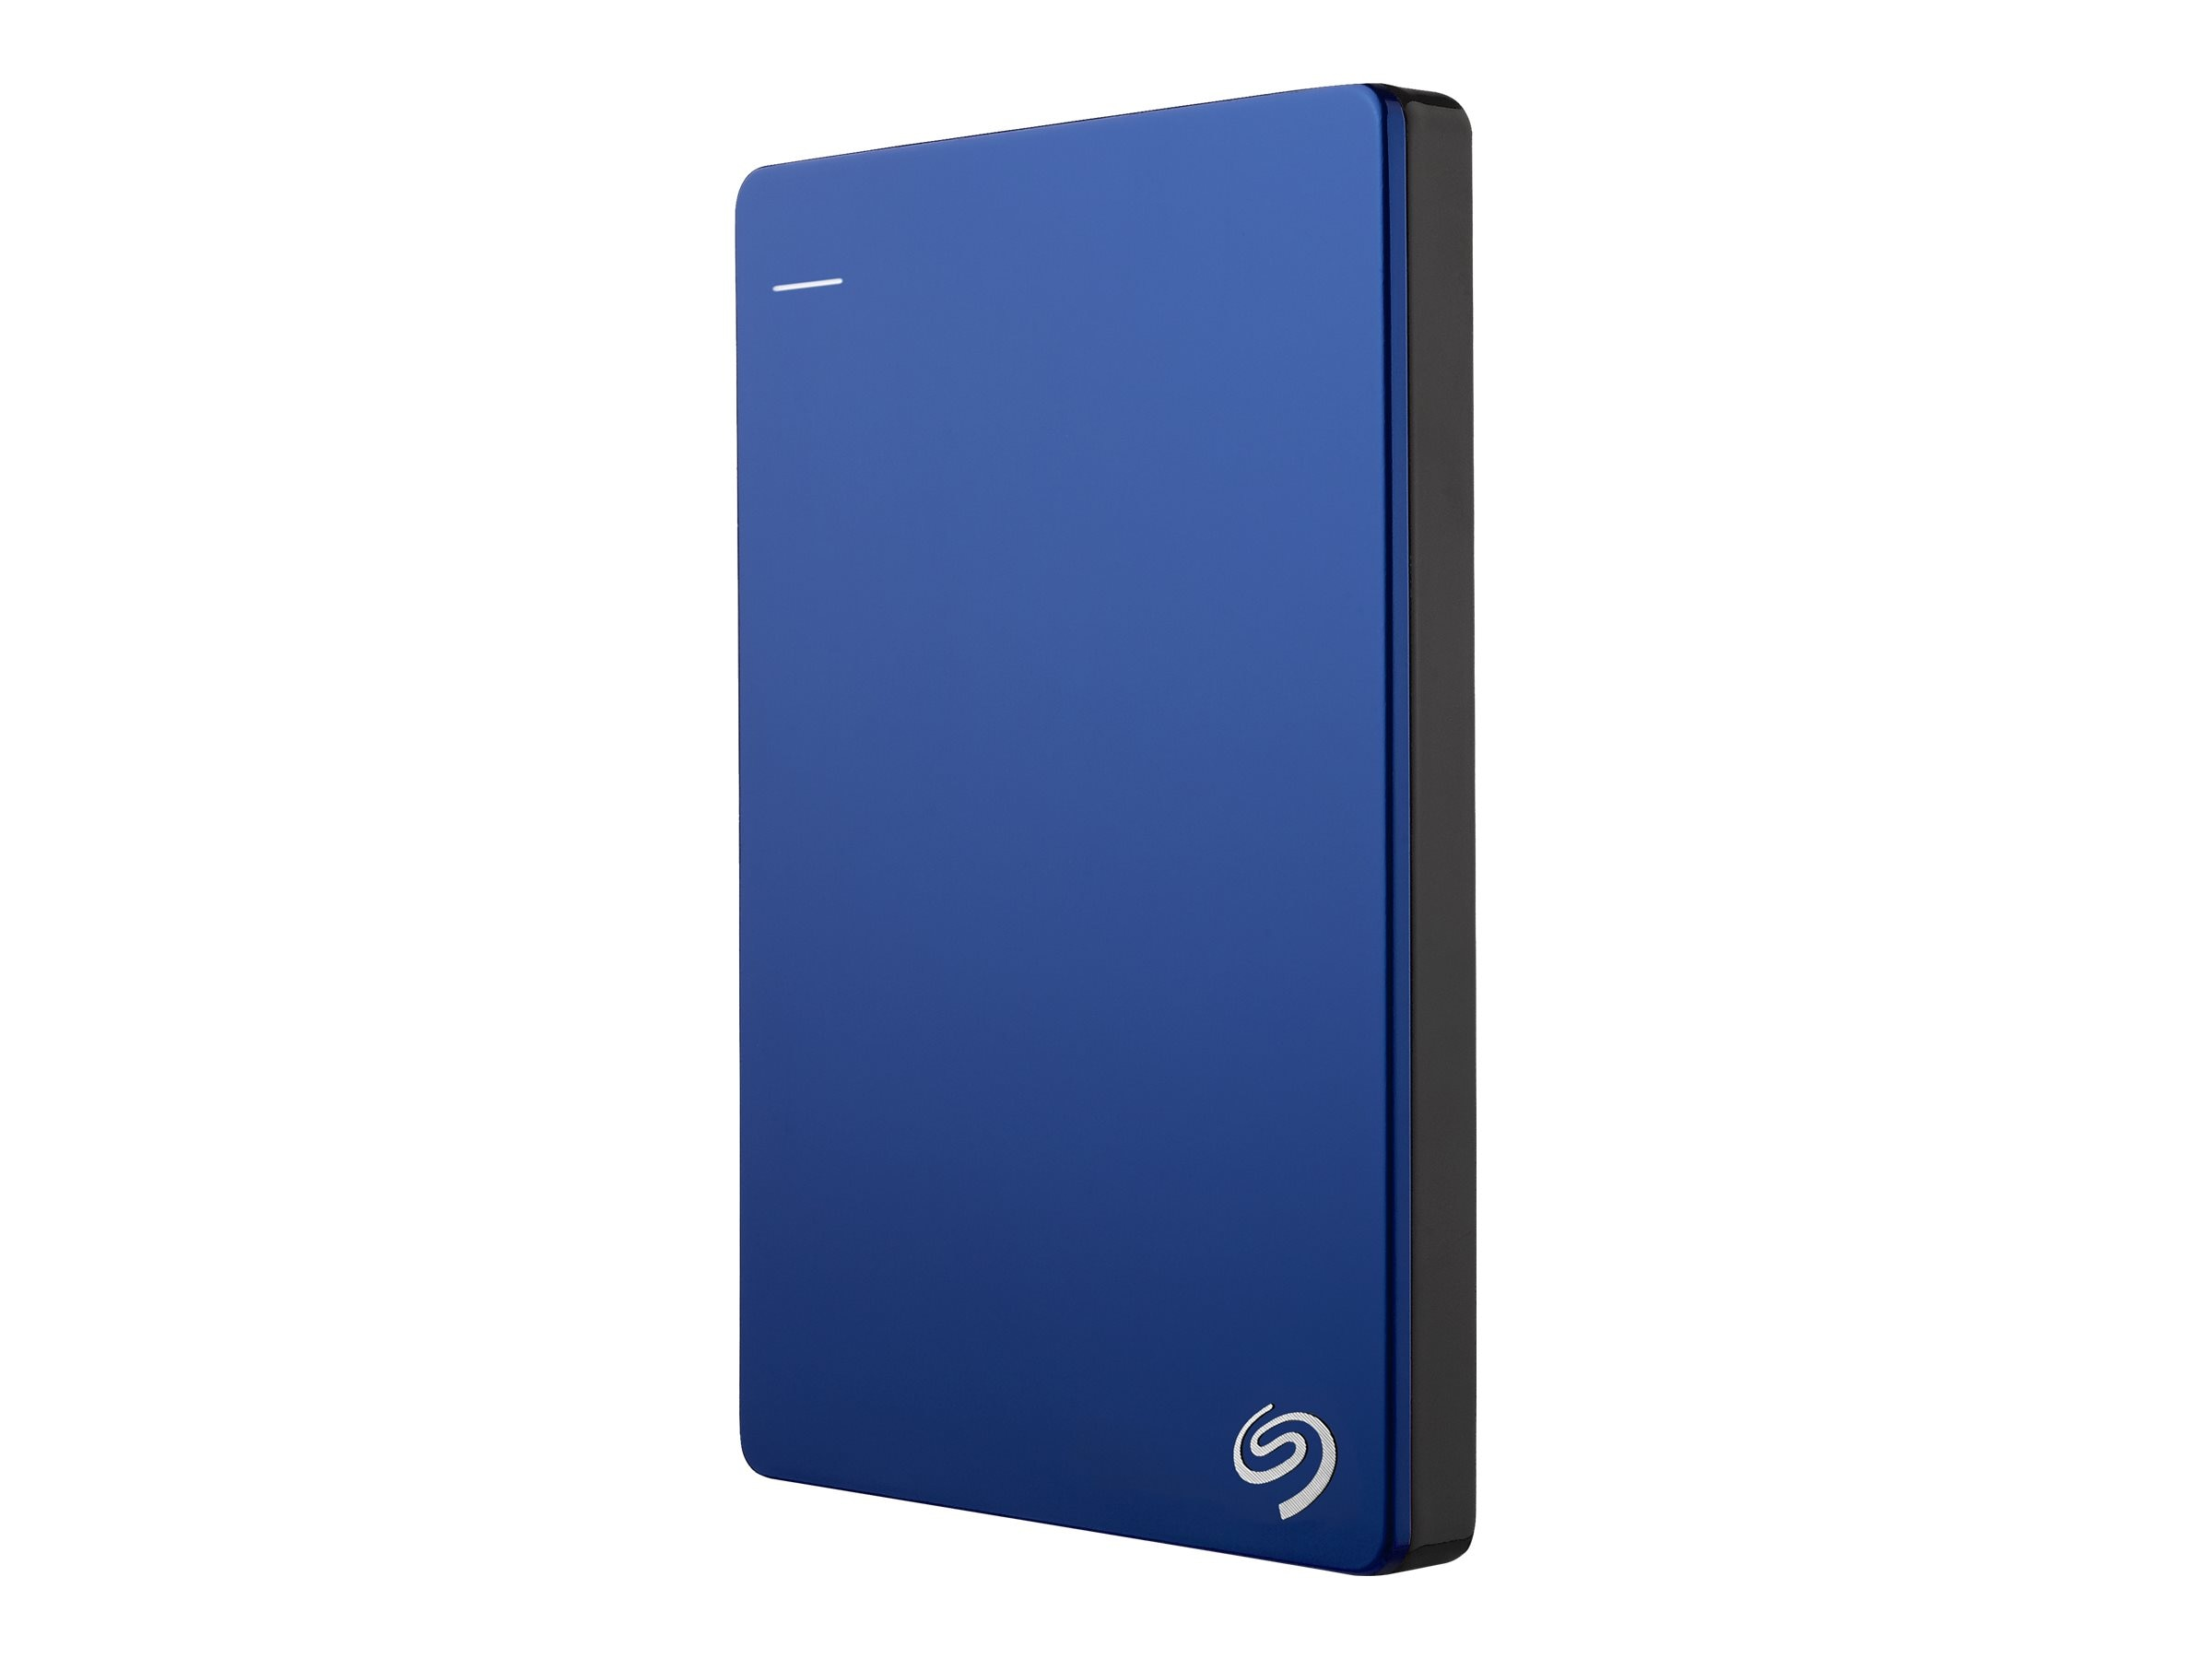 Seagate 1TB Backup Plus USB 3.0 Slim Portable Hard Drive - Blue, STDR1000102, 16573938, Hard Drives - External